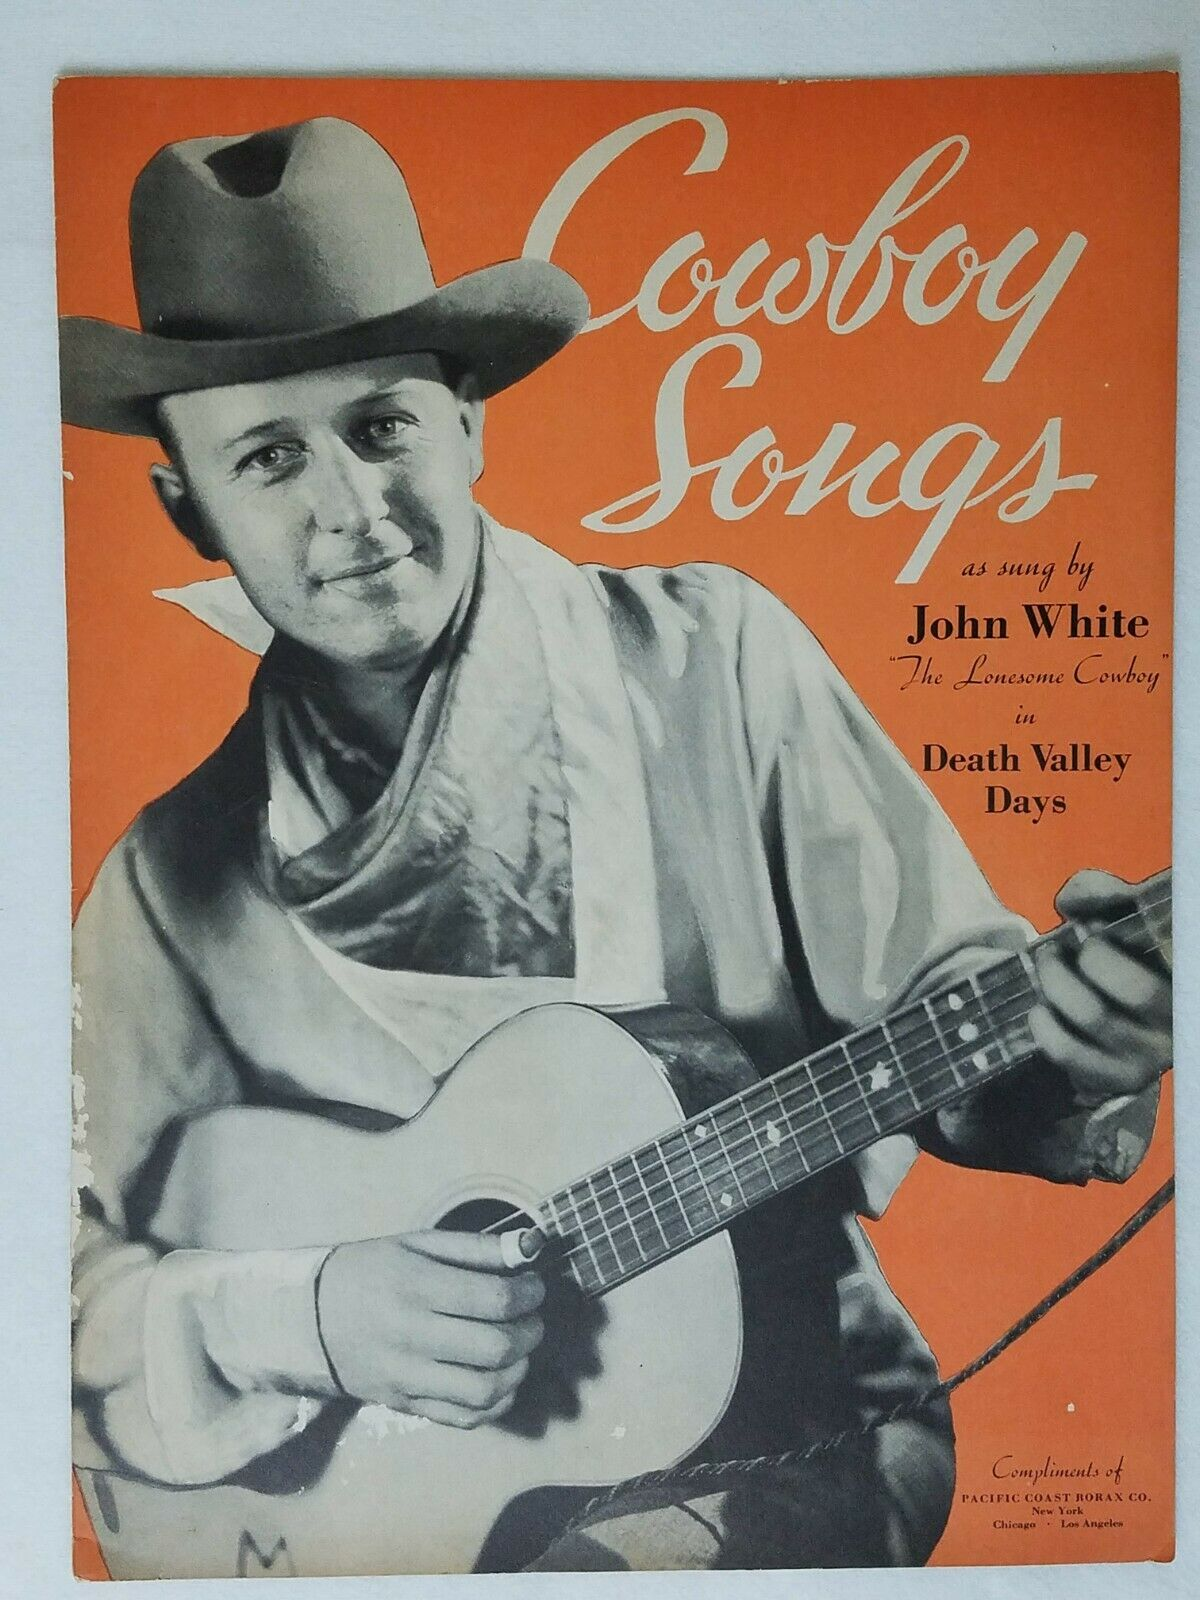 Image 1 - COWBOY SONGS JOHN WHITE Lonesome Cowboy Death Valley Days 6 Songs 1934 Song Book